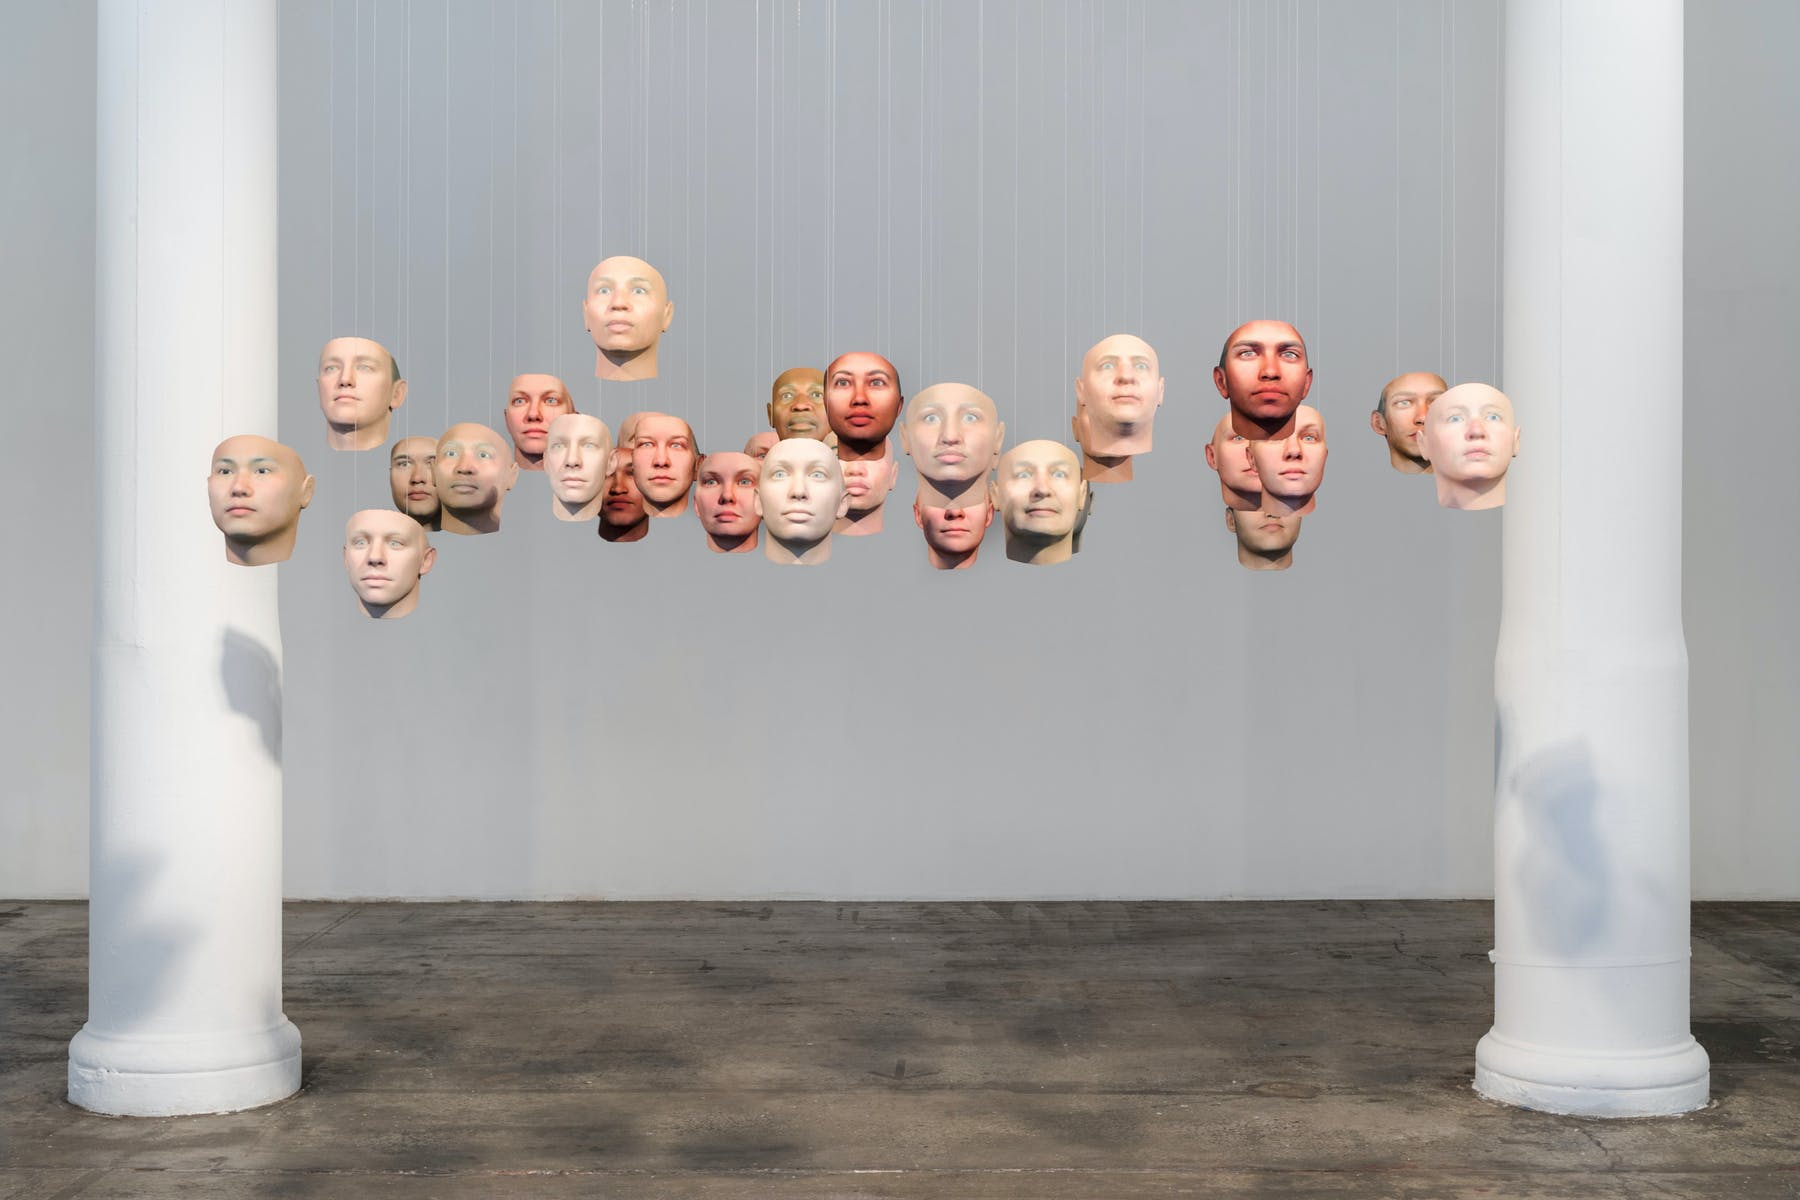 20 floating heads in a gallery with two columns